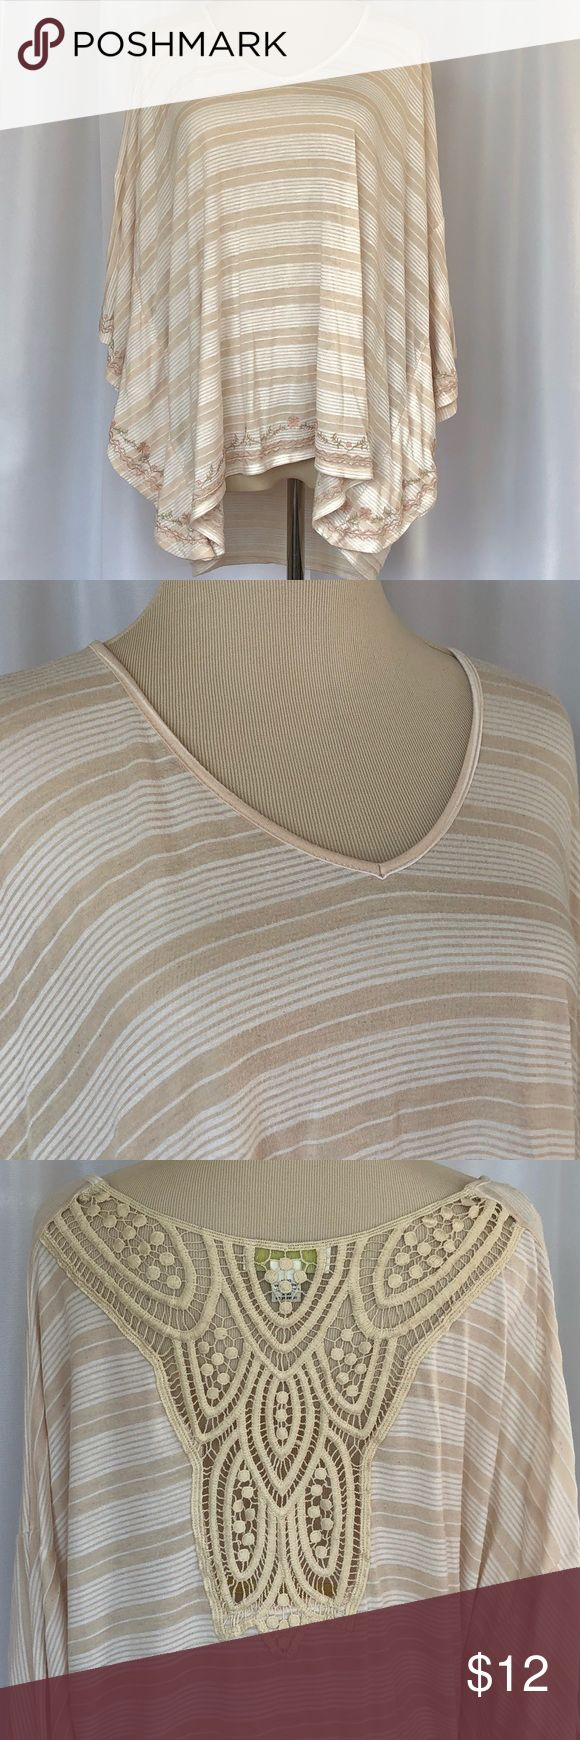 Forever 21 Oversized Slouchy Top Lacy Oversized Slouchy Poncho Style V-Neck Top  Forever 21 light tan and cream striped with lace and embroidered flower details. GUC some minor piling. Size 2x Forever 21 Tops Tunics